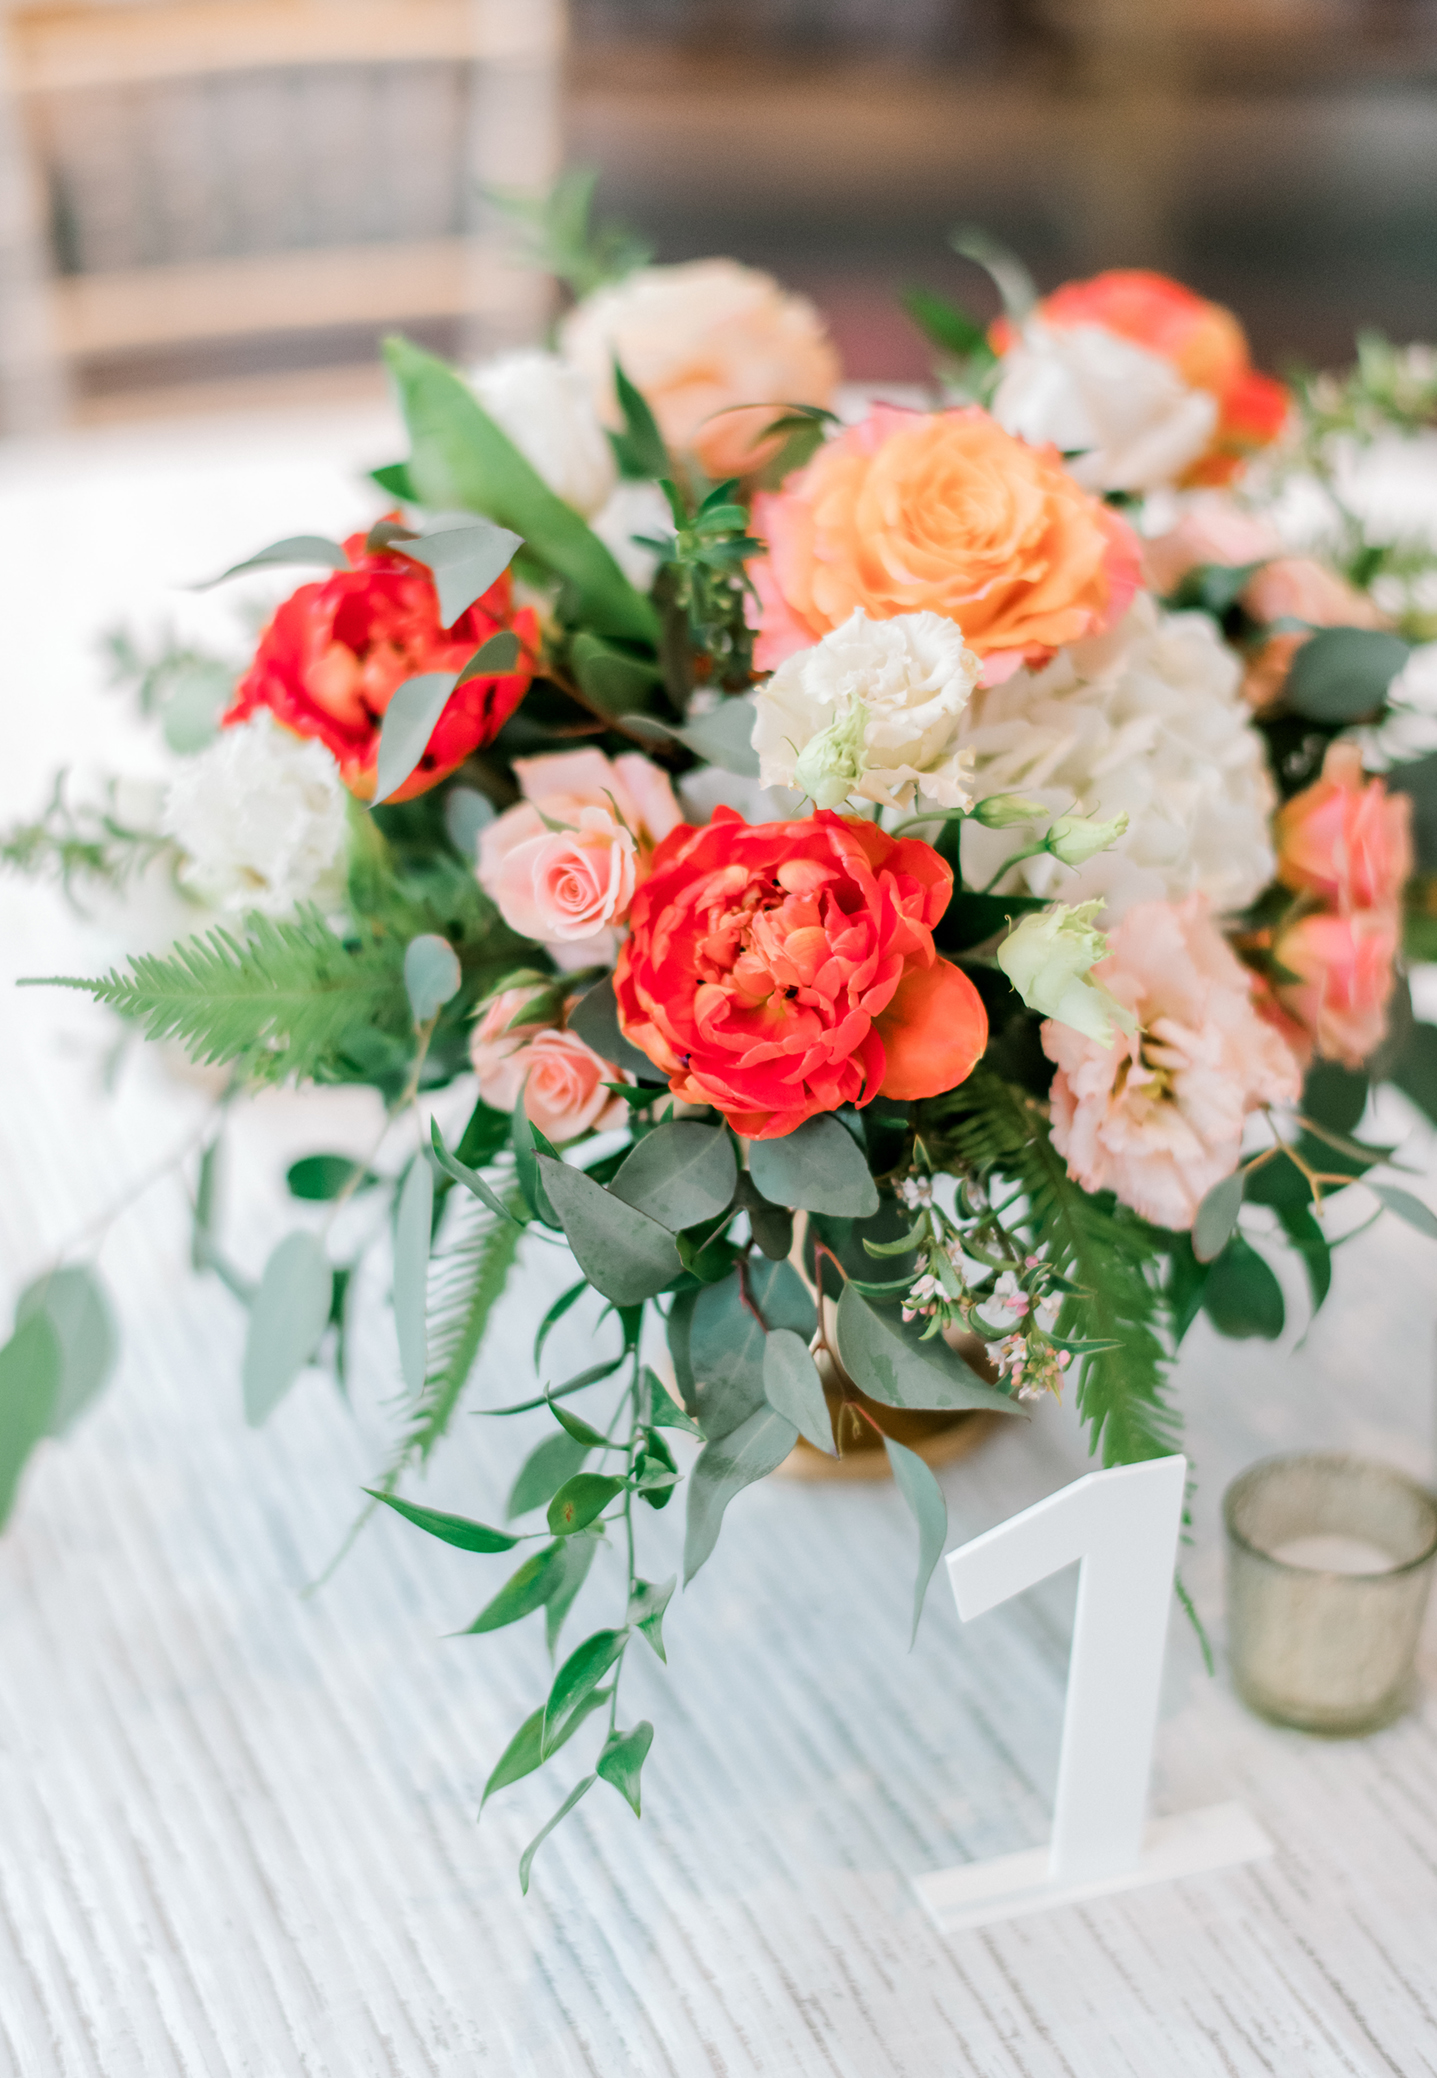 Garden style bright, lush flowers in a low pedestal centerpiece with double tulips for a spring wedding.